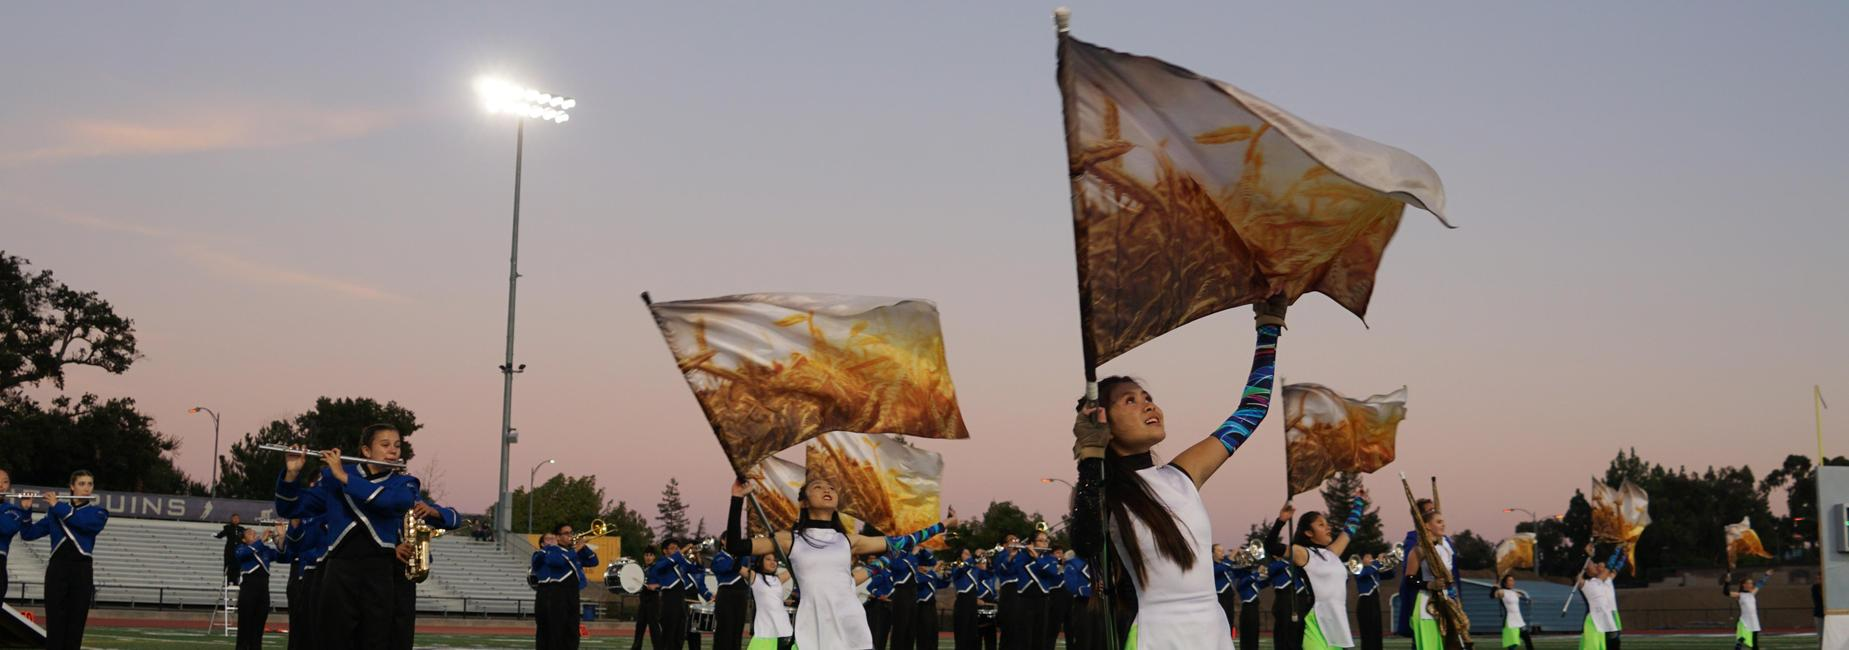 Students playing instruments and moving flags on the football field.